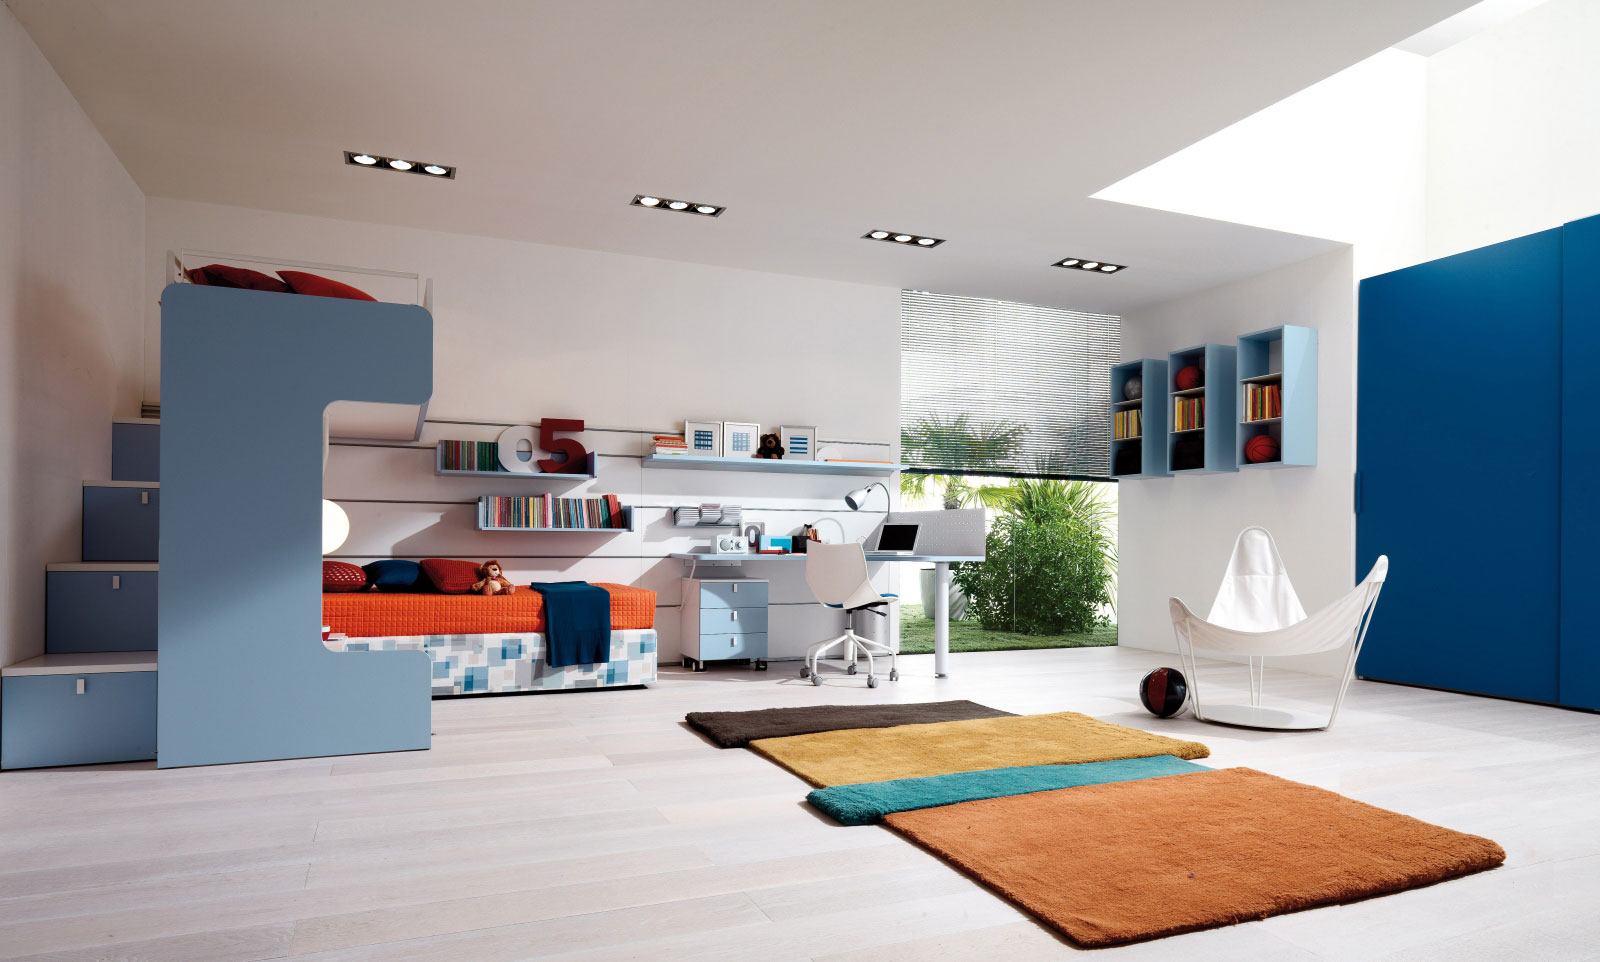 Fill Spacious Kids Bedroom with Stunning Kids Beds with Storage and Stylish Desk near Swivel Chair